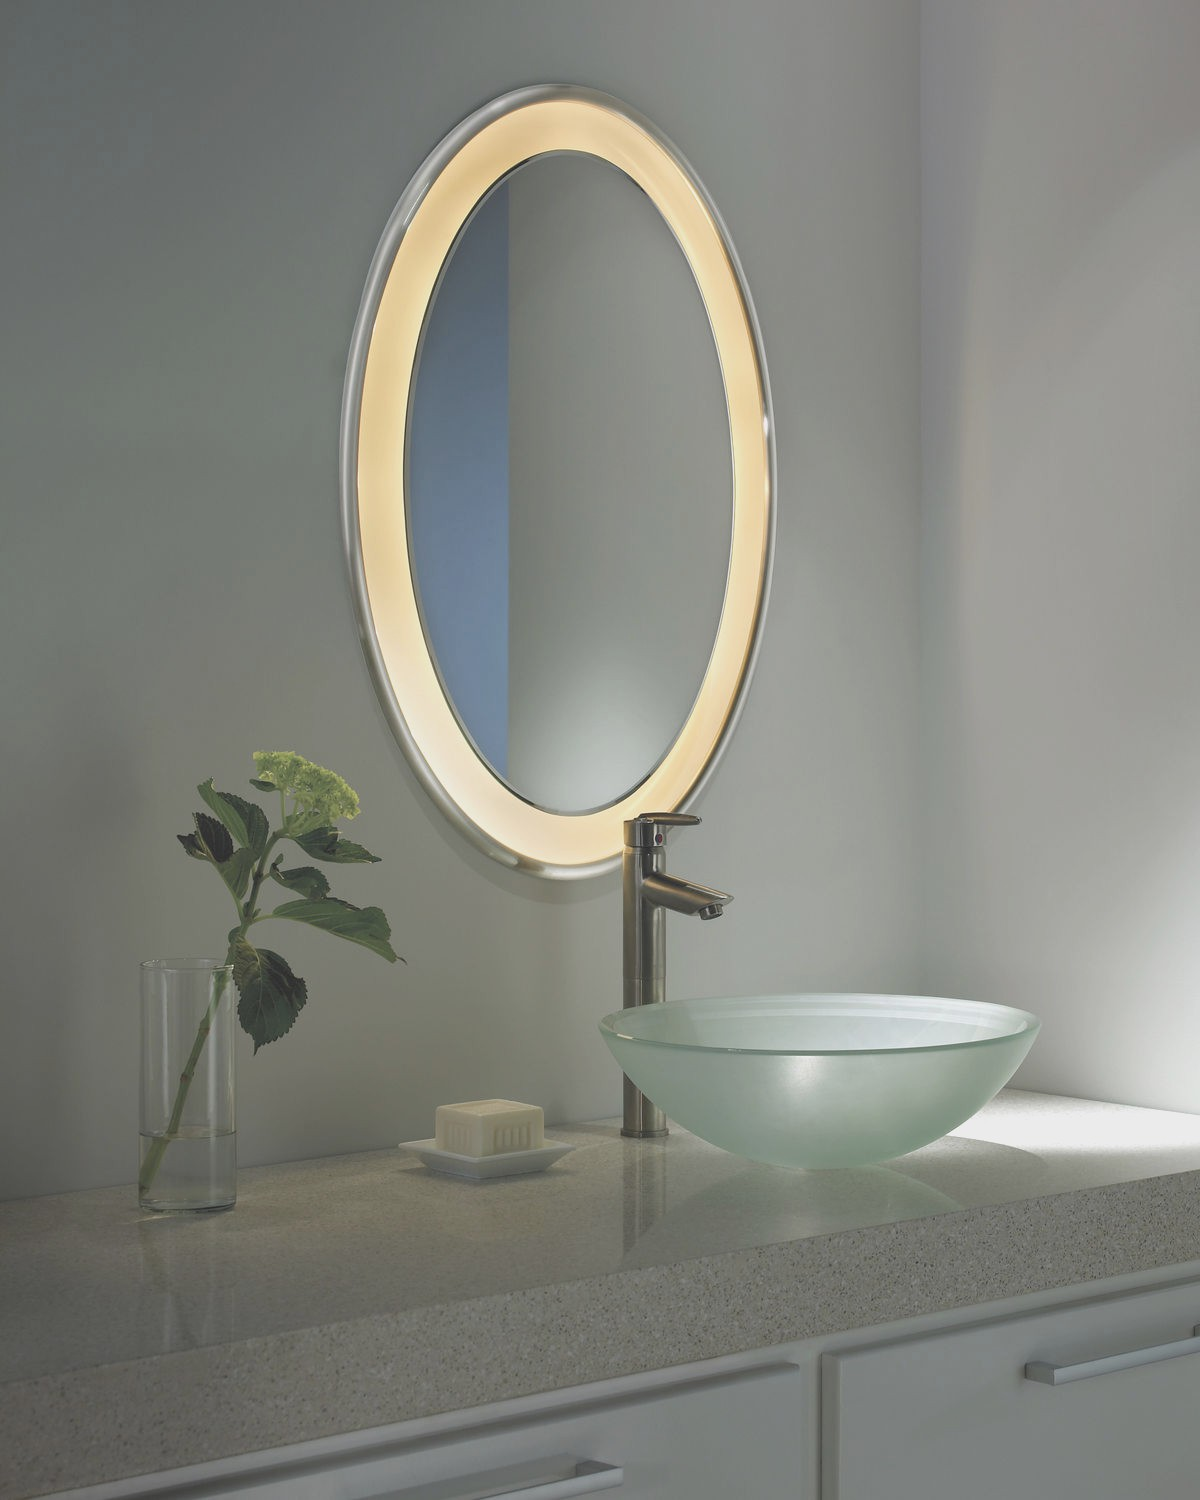 Lighted Bathroom Wall Mirror Large: Mirrors: Lighted Wall Mirror For Elegant Vanity Design